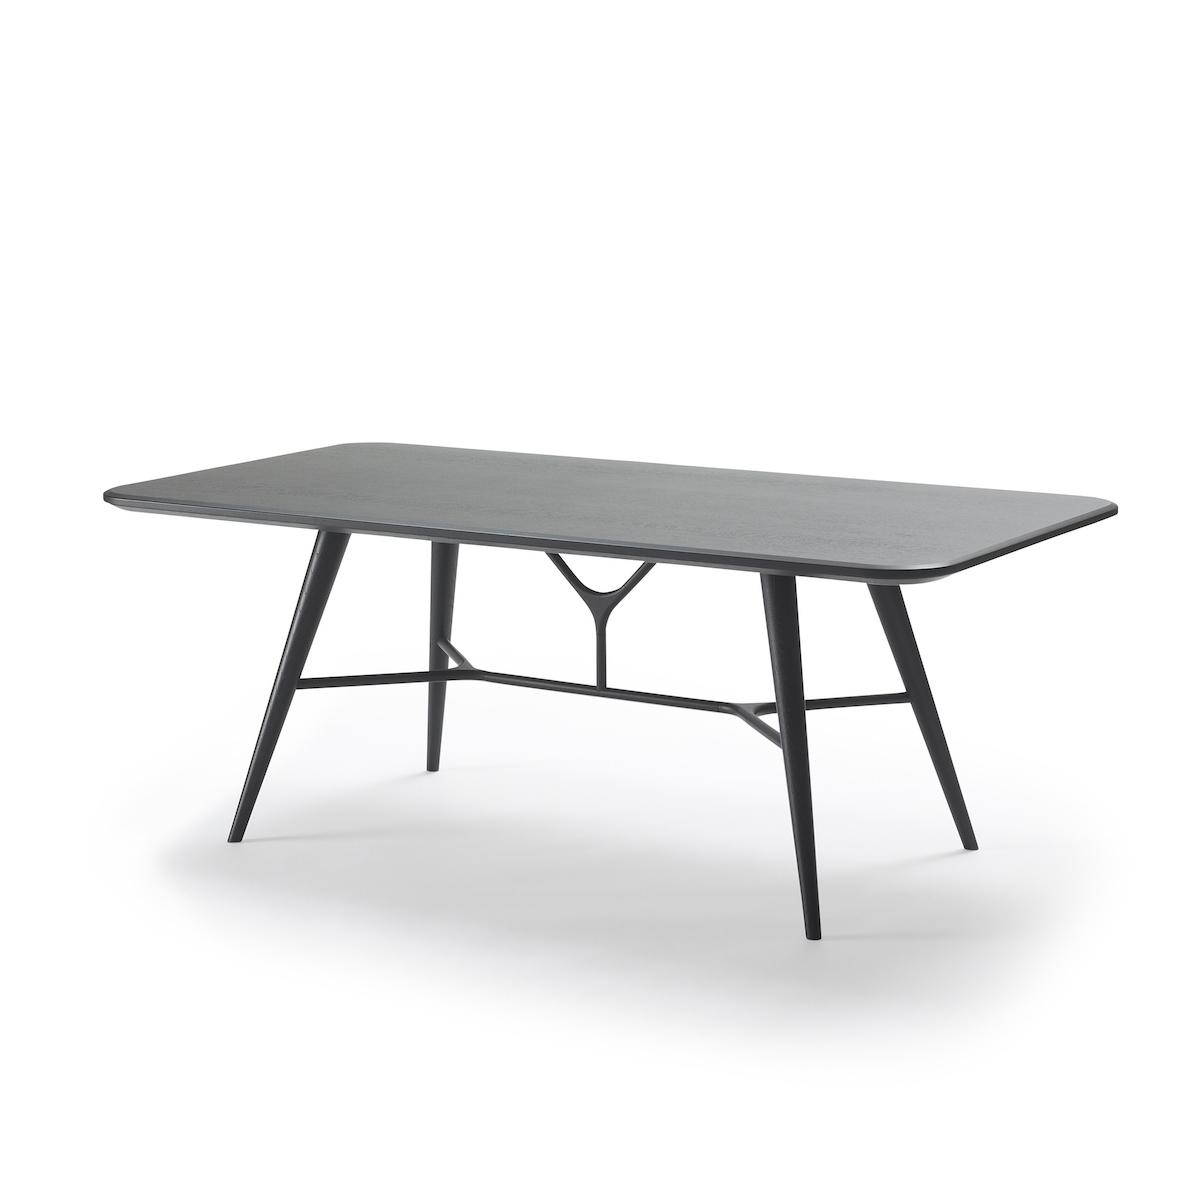 Spine-Coffee-Table-1740-black-2